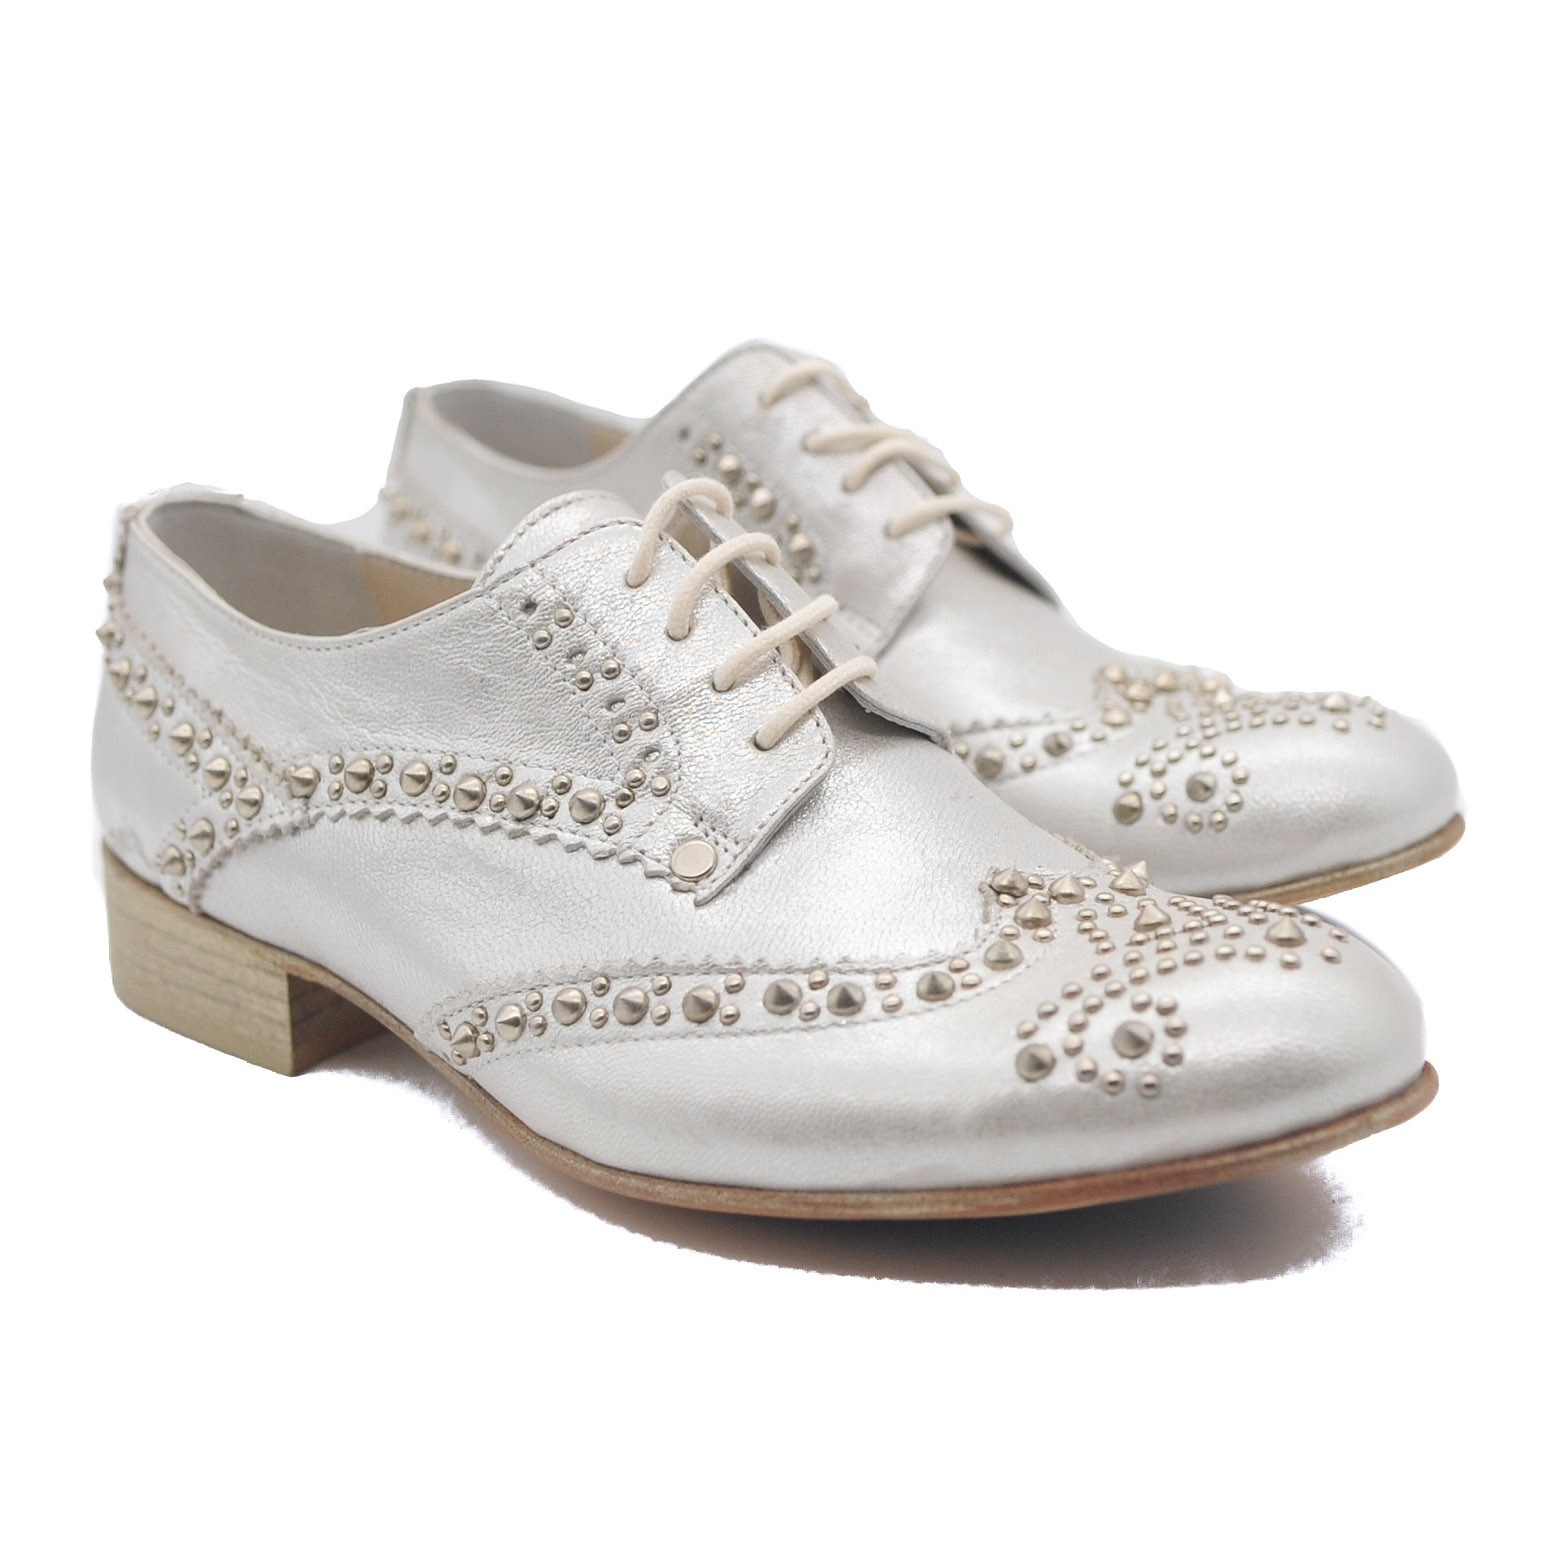 Goody2Shoes Ladies Low Heel Lace Up Silver Brogues with Decorative Studs